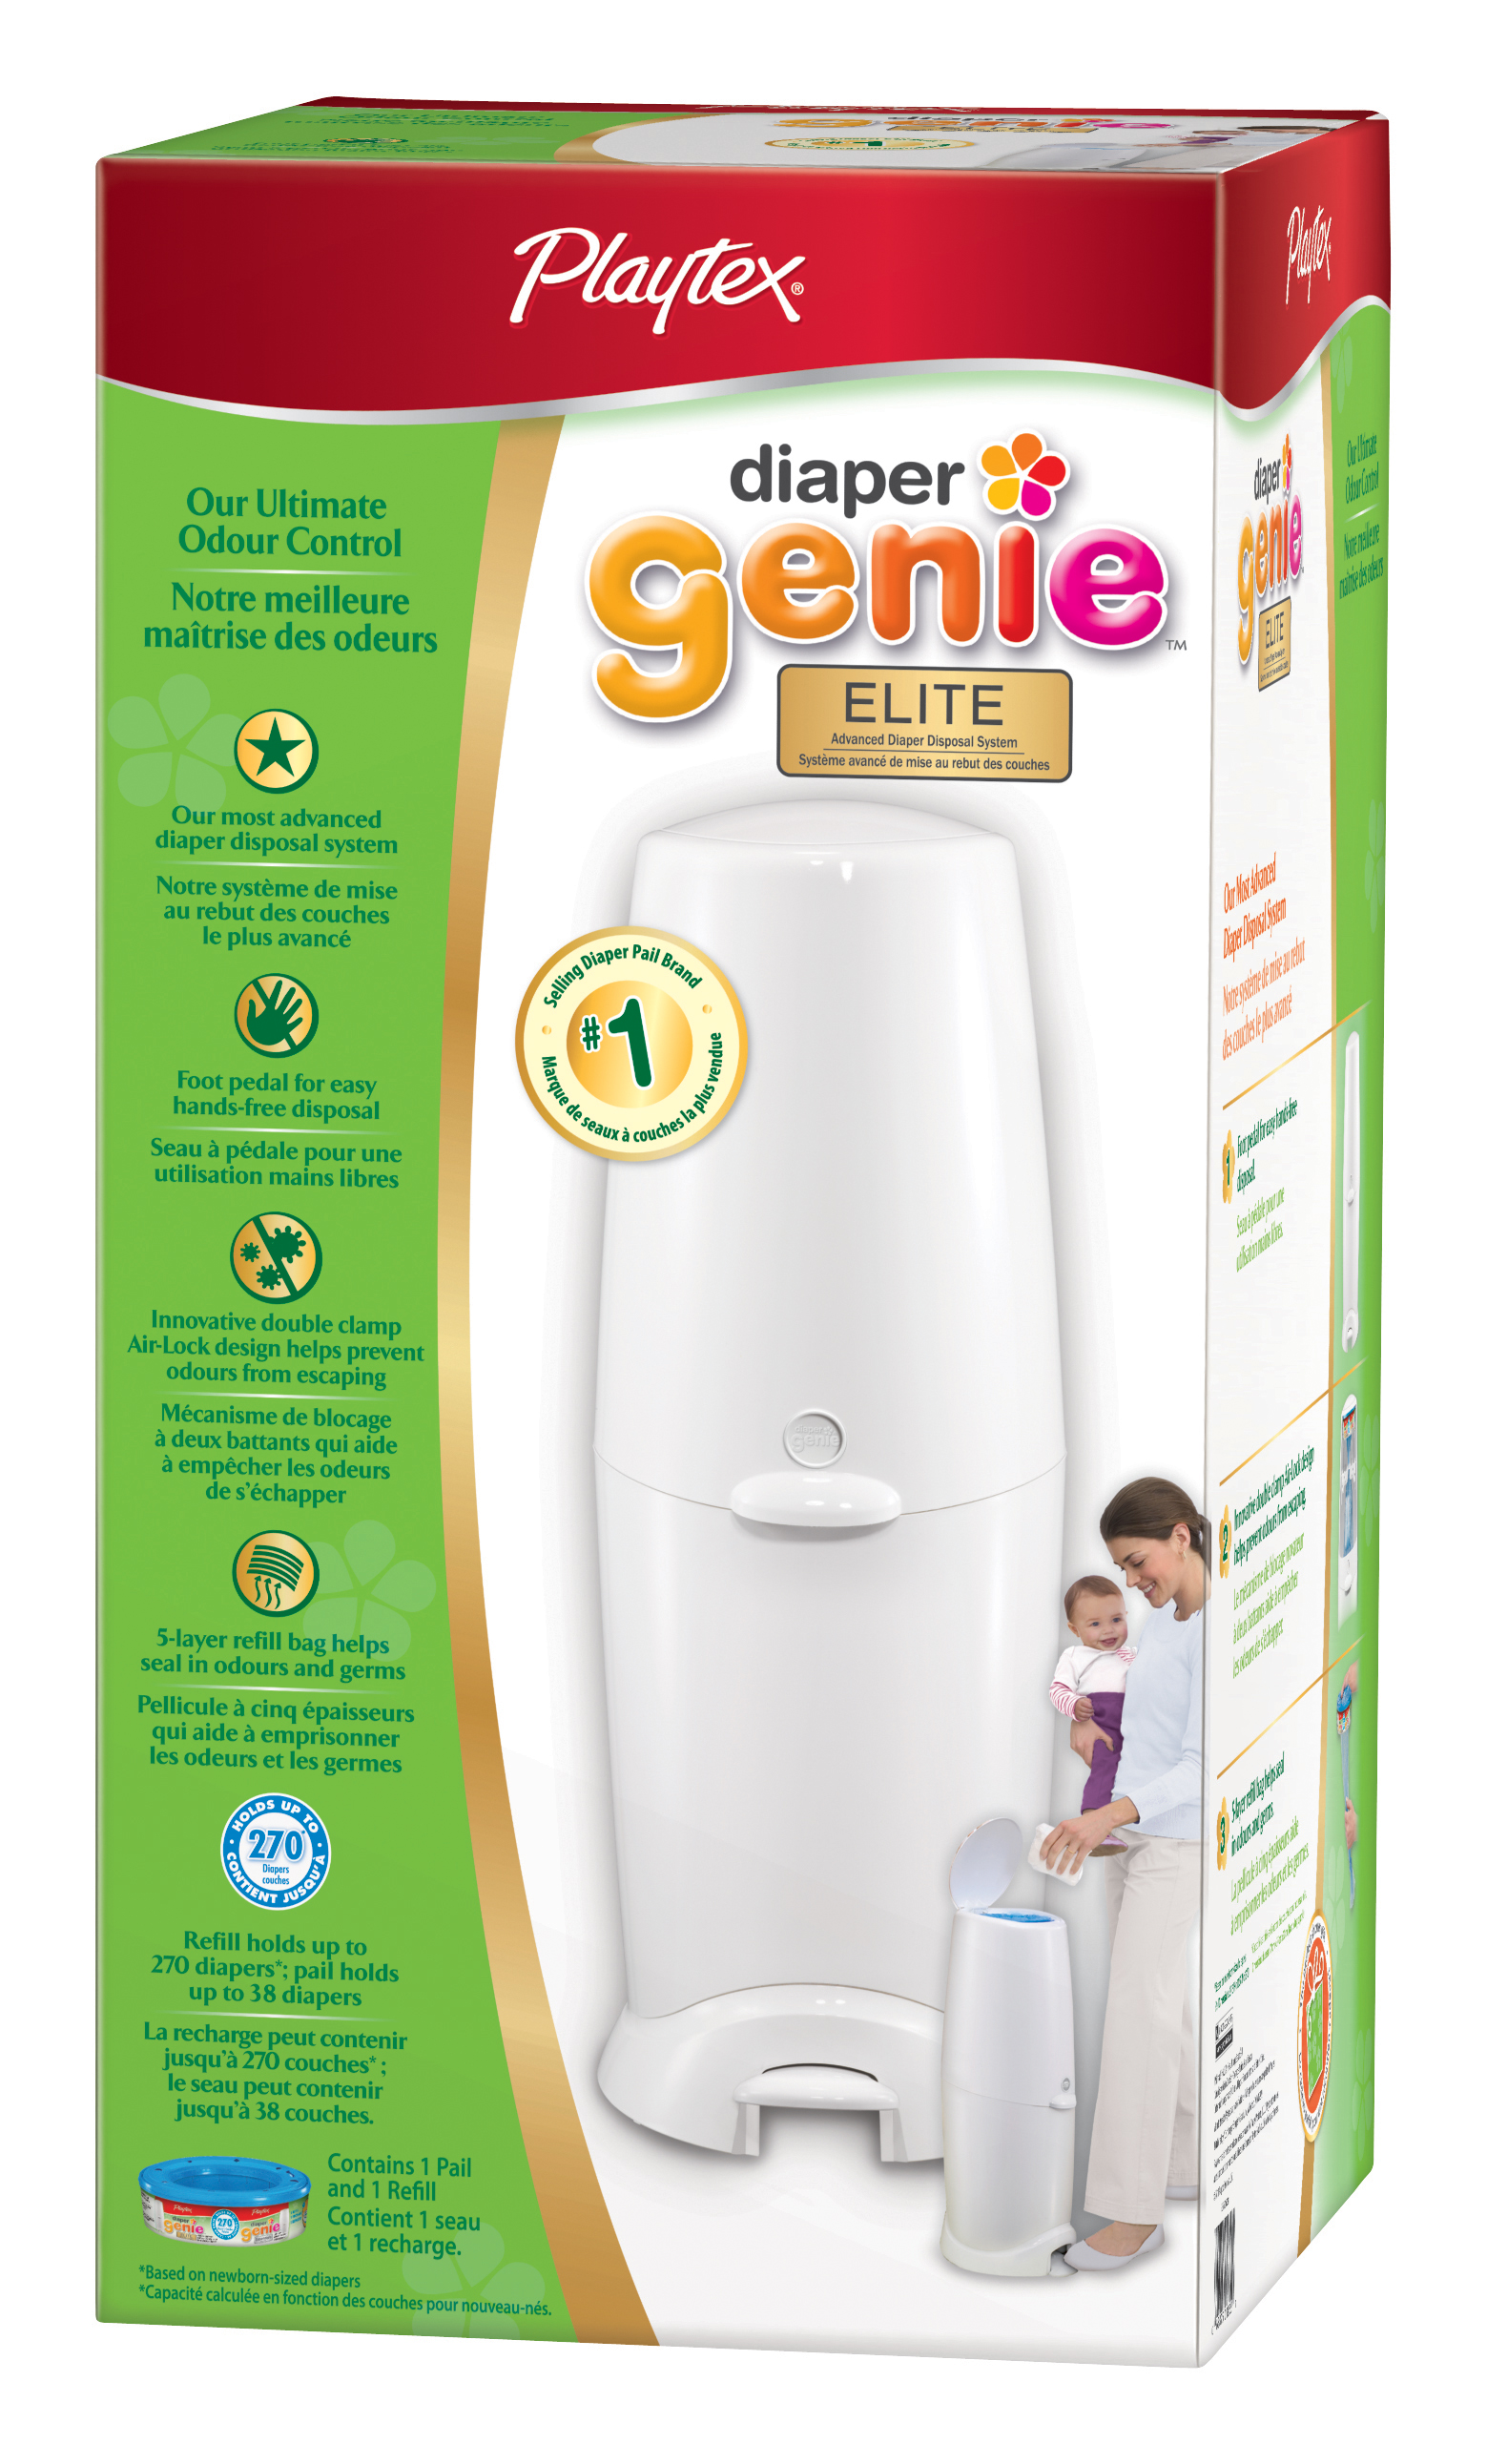 Here's Your Chance to Try the Playtex Diaper Genie Elite, It is also an air-tight seal so that the odor doesn't escape, This famous diaper pail has built-in antimicrobial properties which slow down bacteria growth,